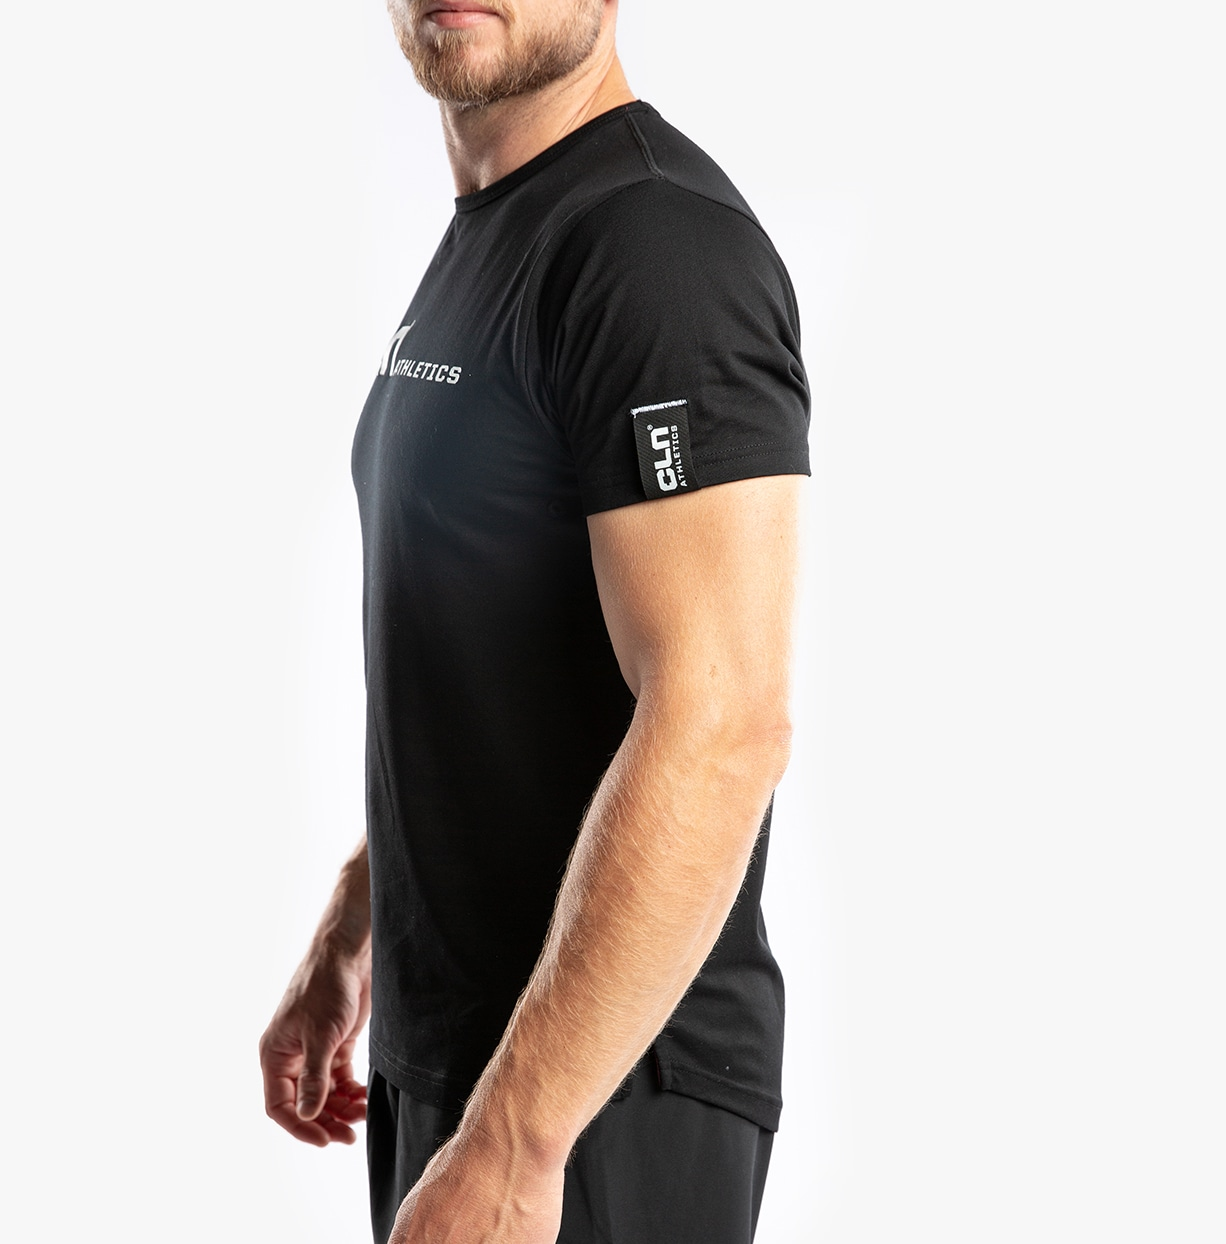 CLN Nogger T-shirt Black